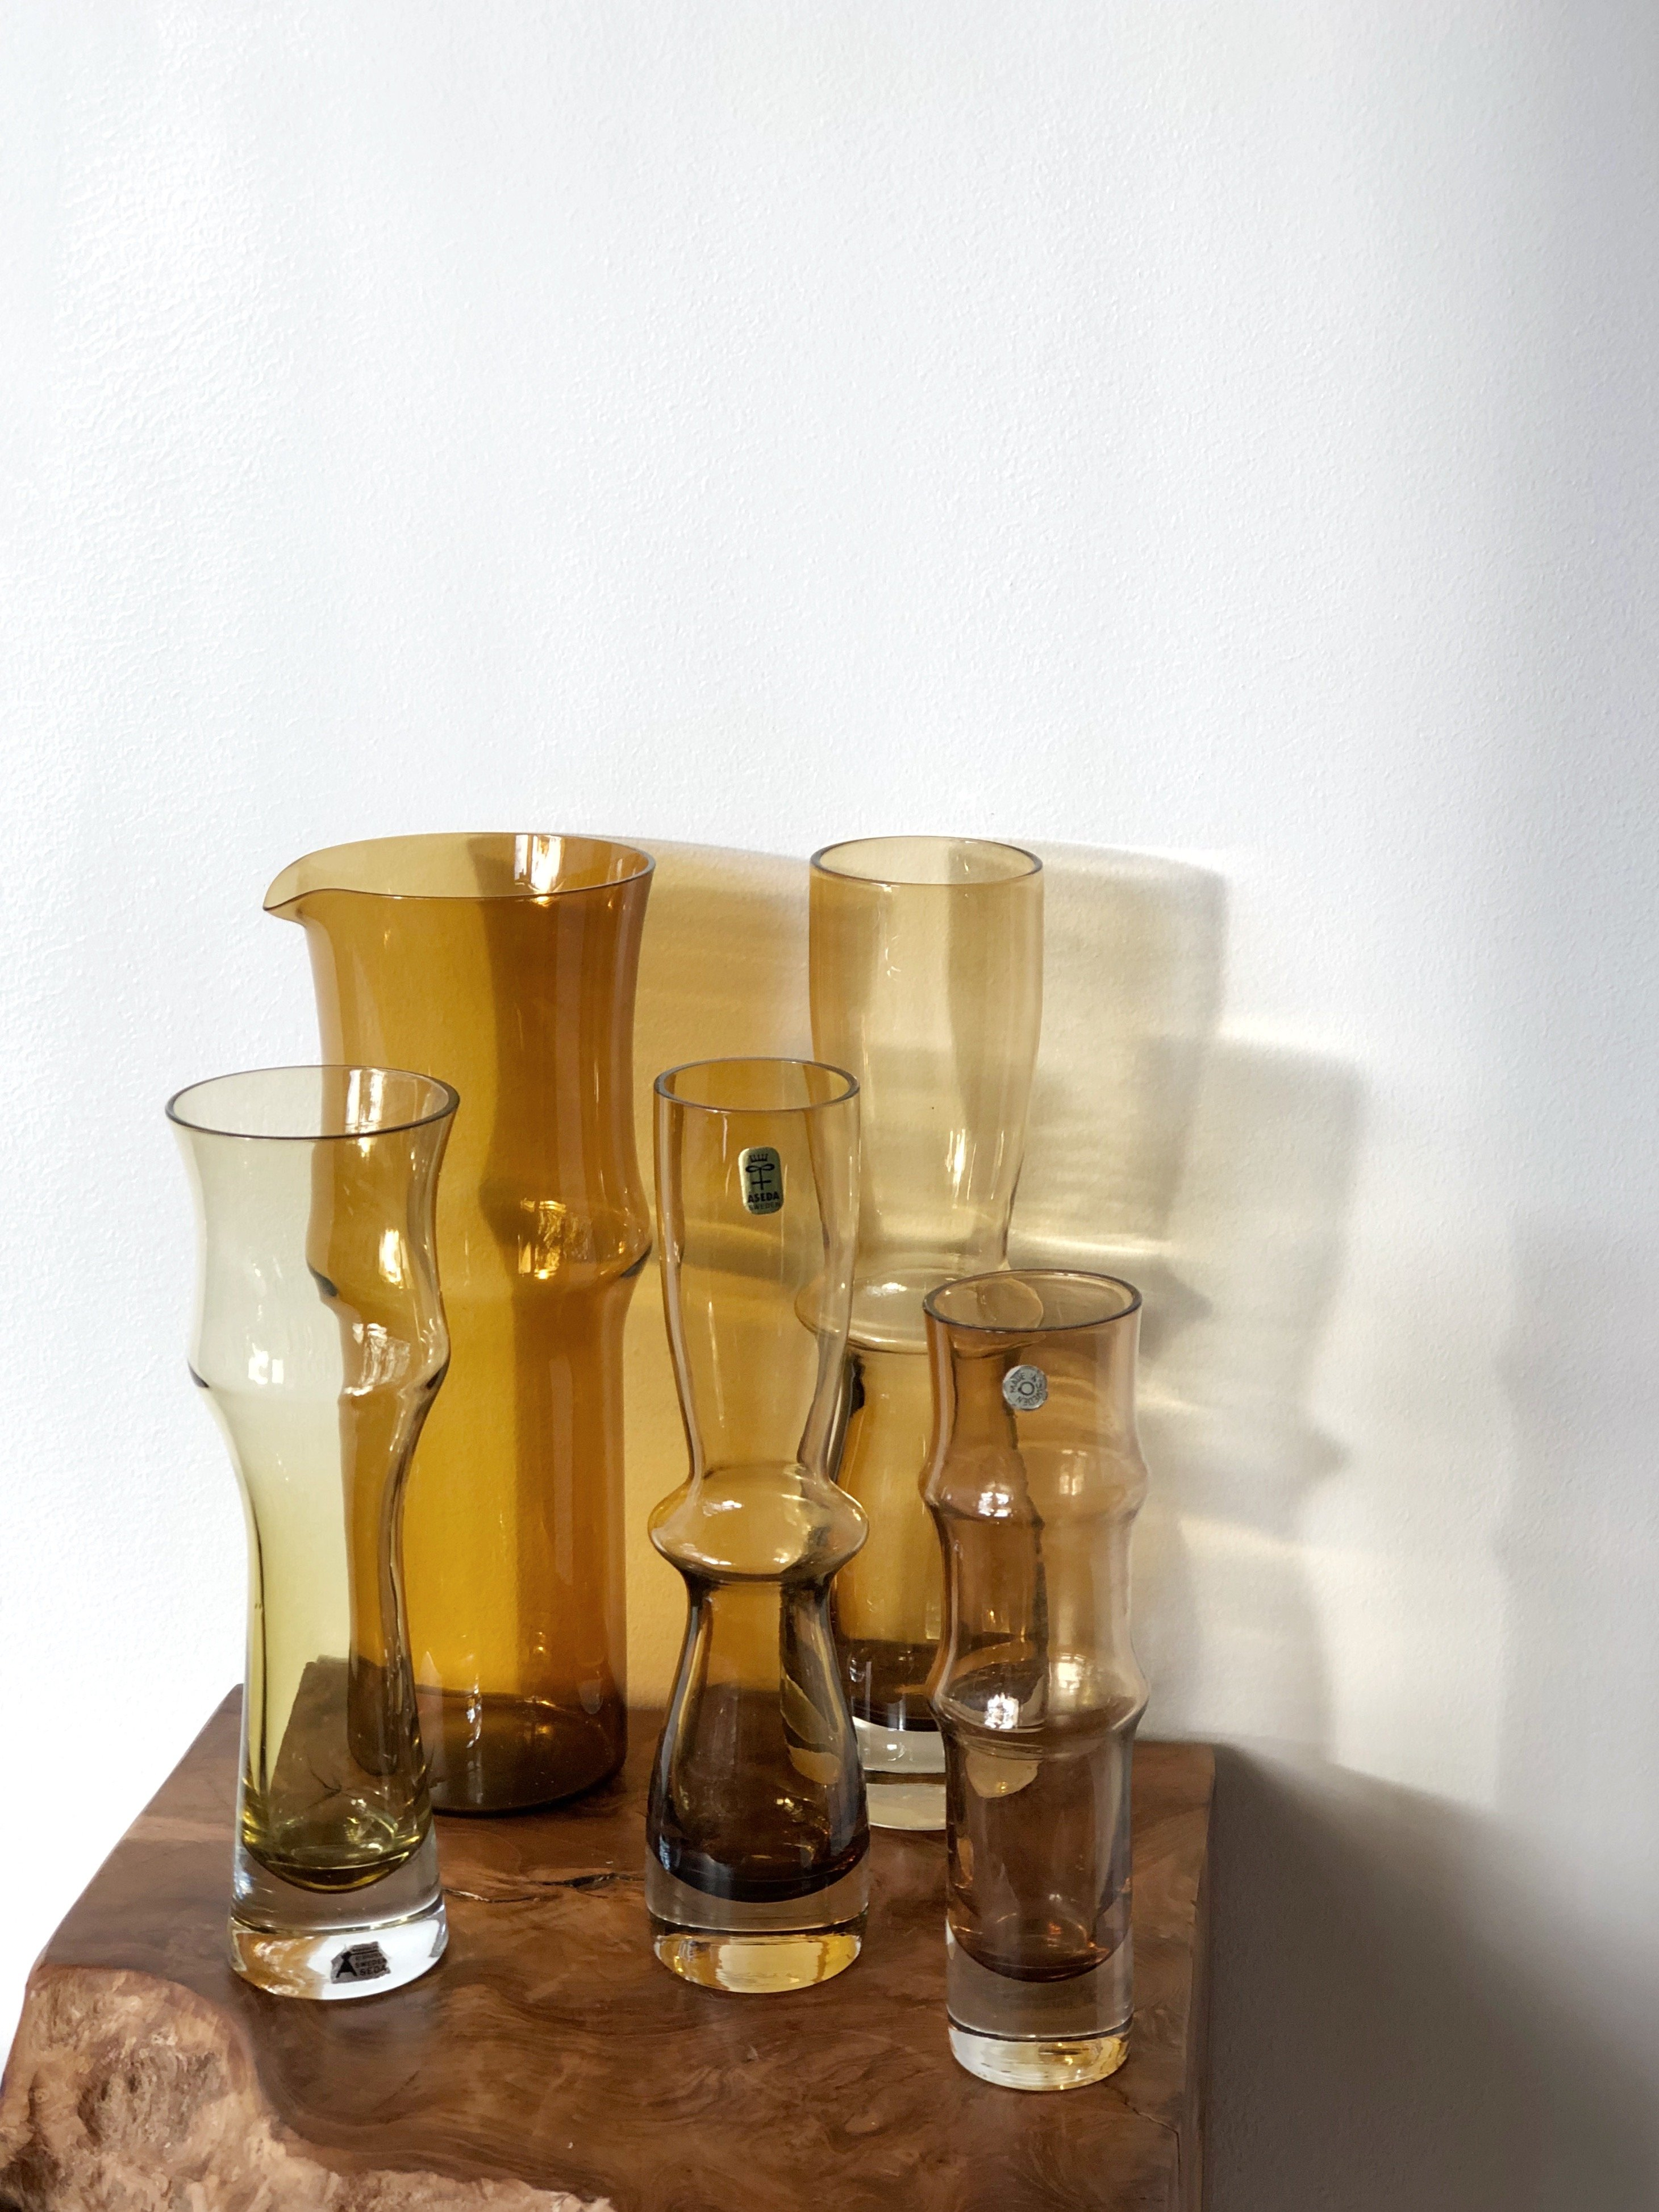 Åseda Amber Glass Vases - set of five 1960's